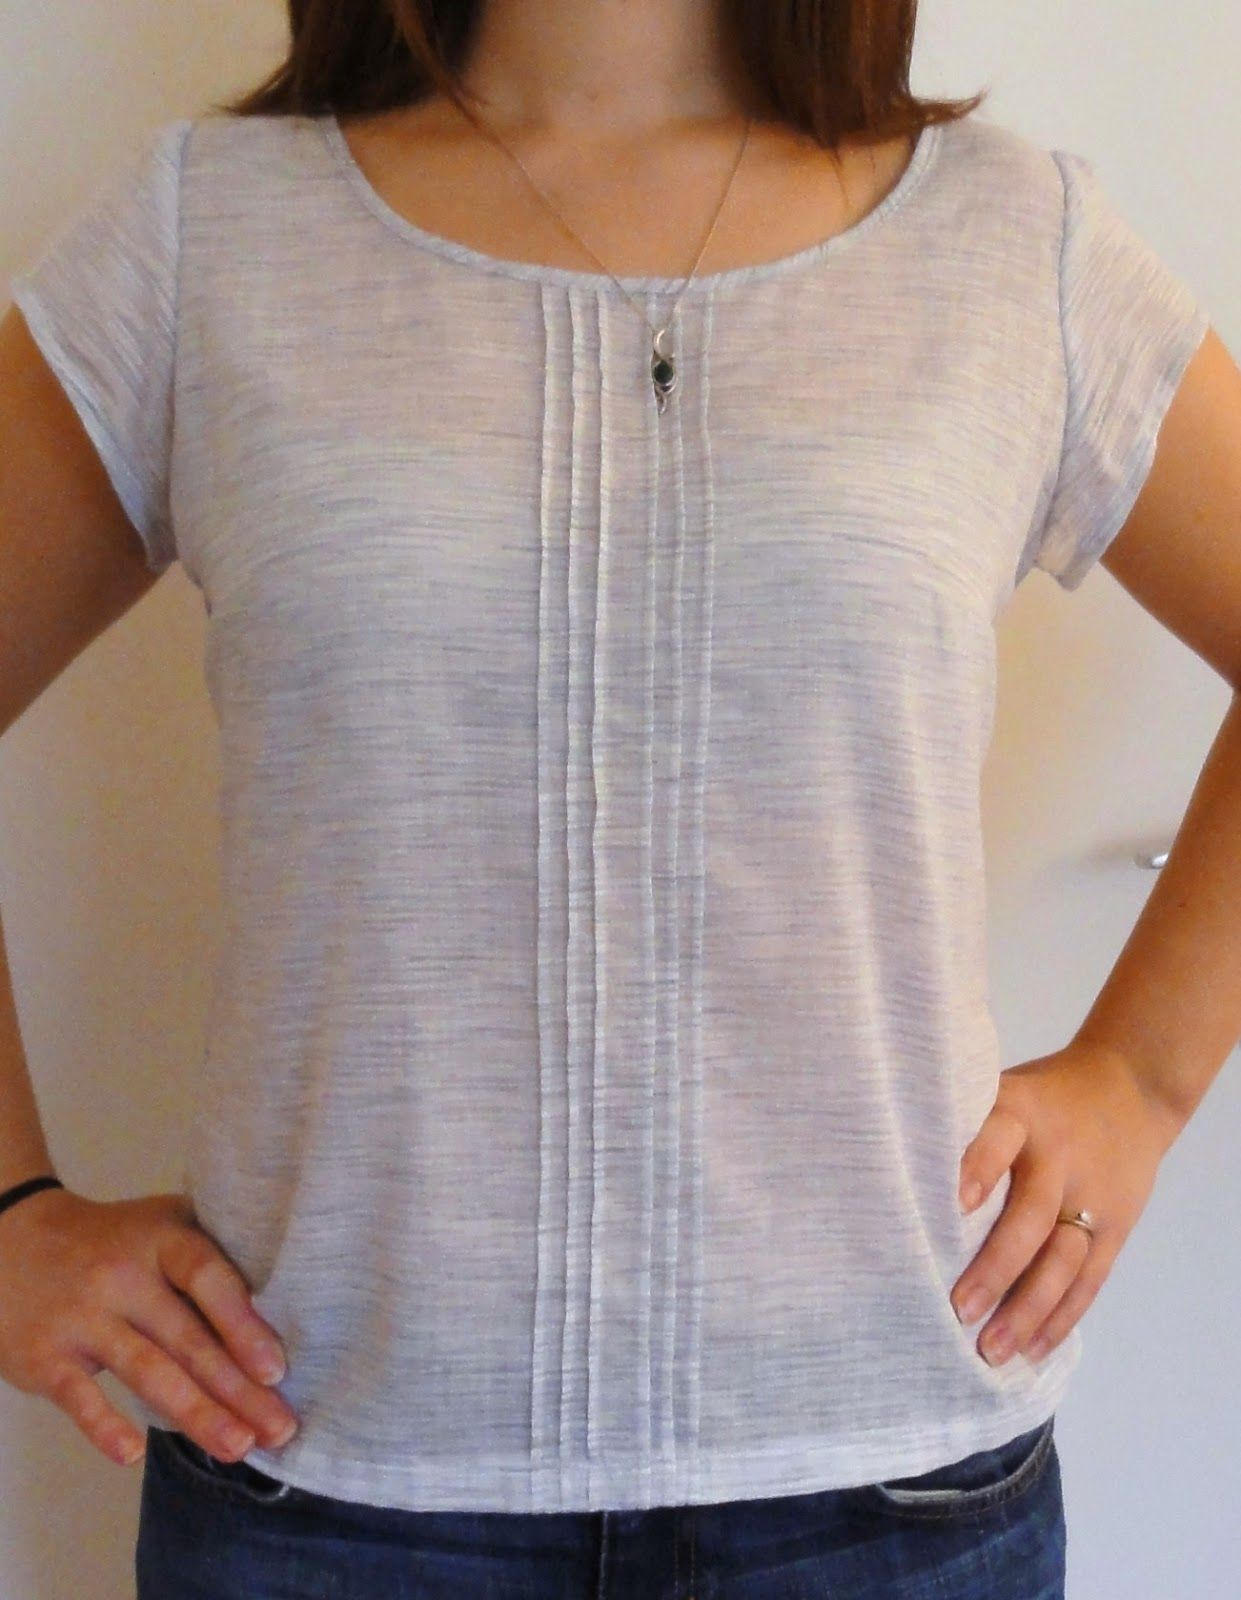 Colette Sorbetto top with pintucks | Sewing | Pinterest | Kleidung ...